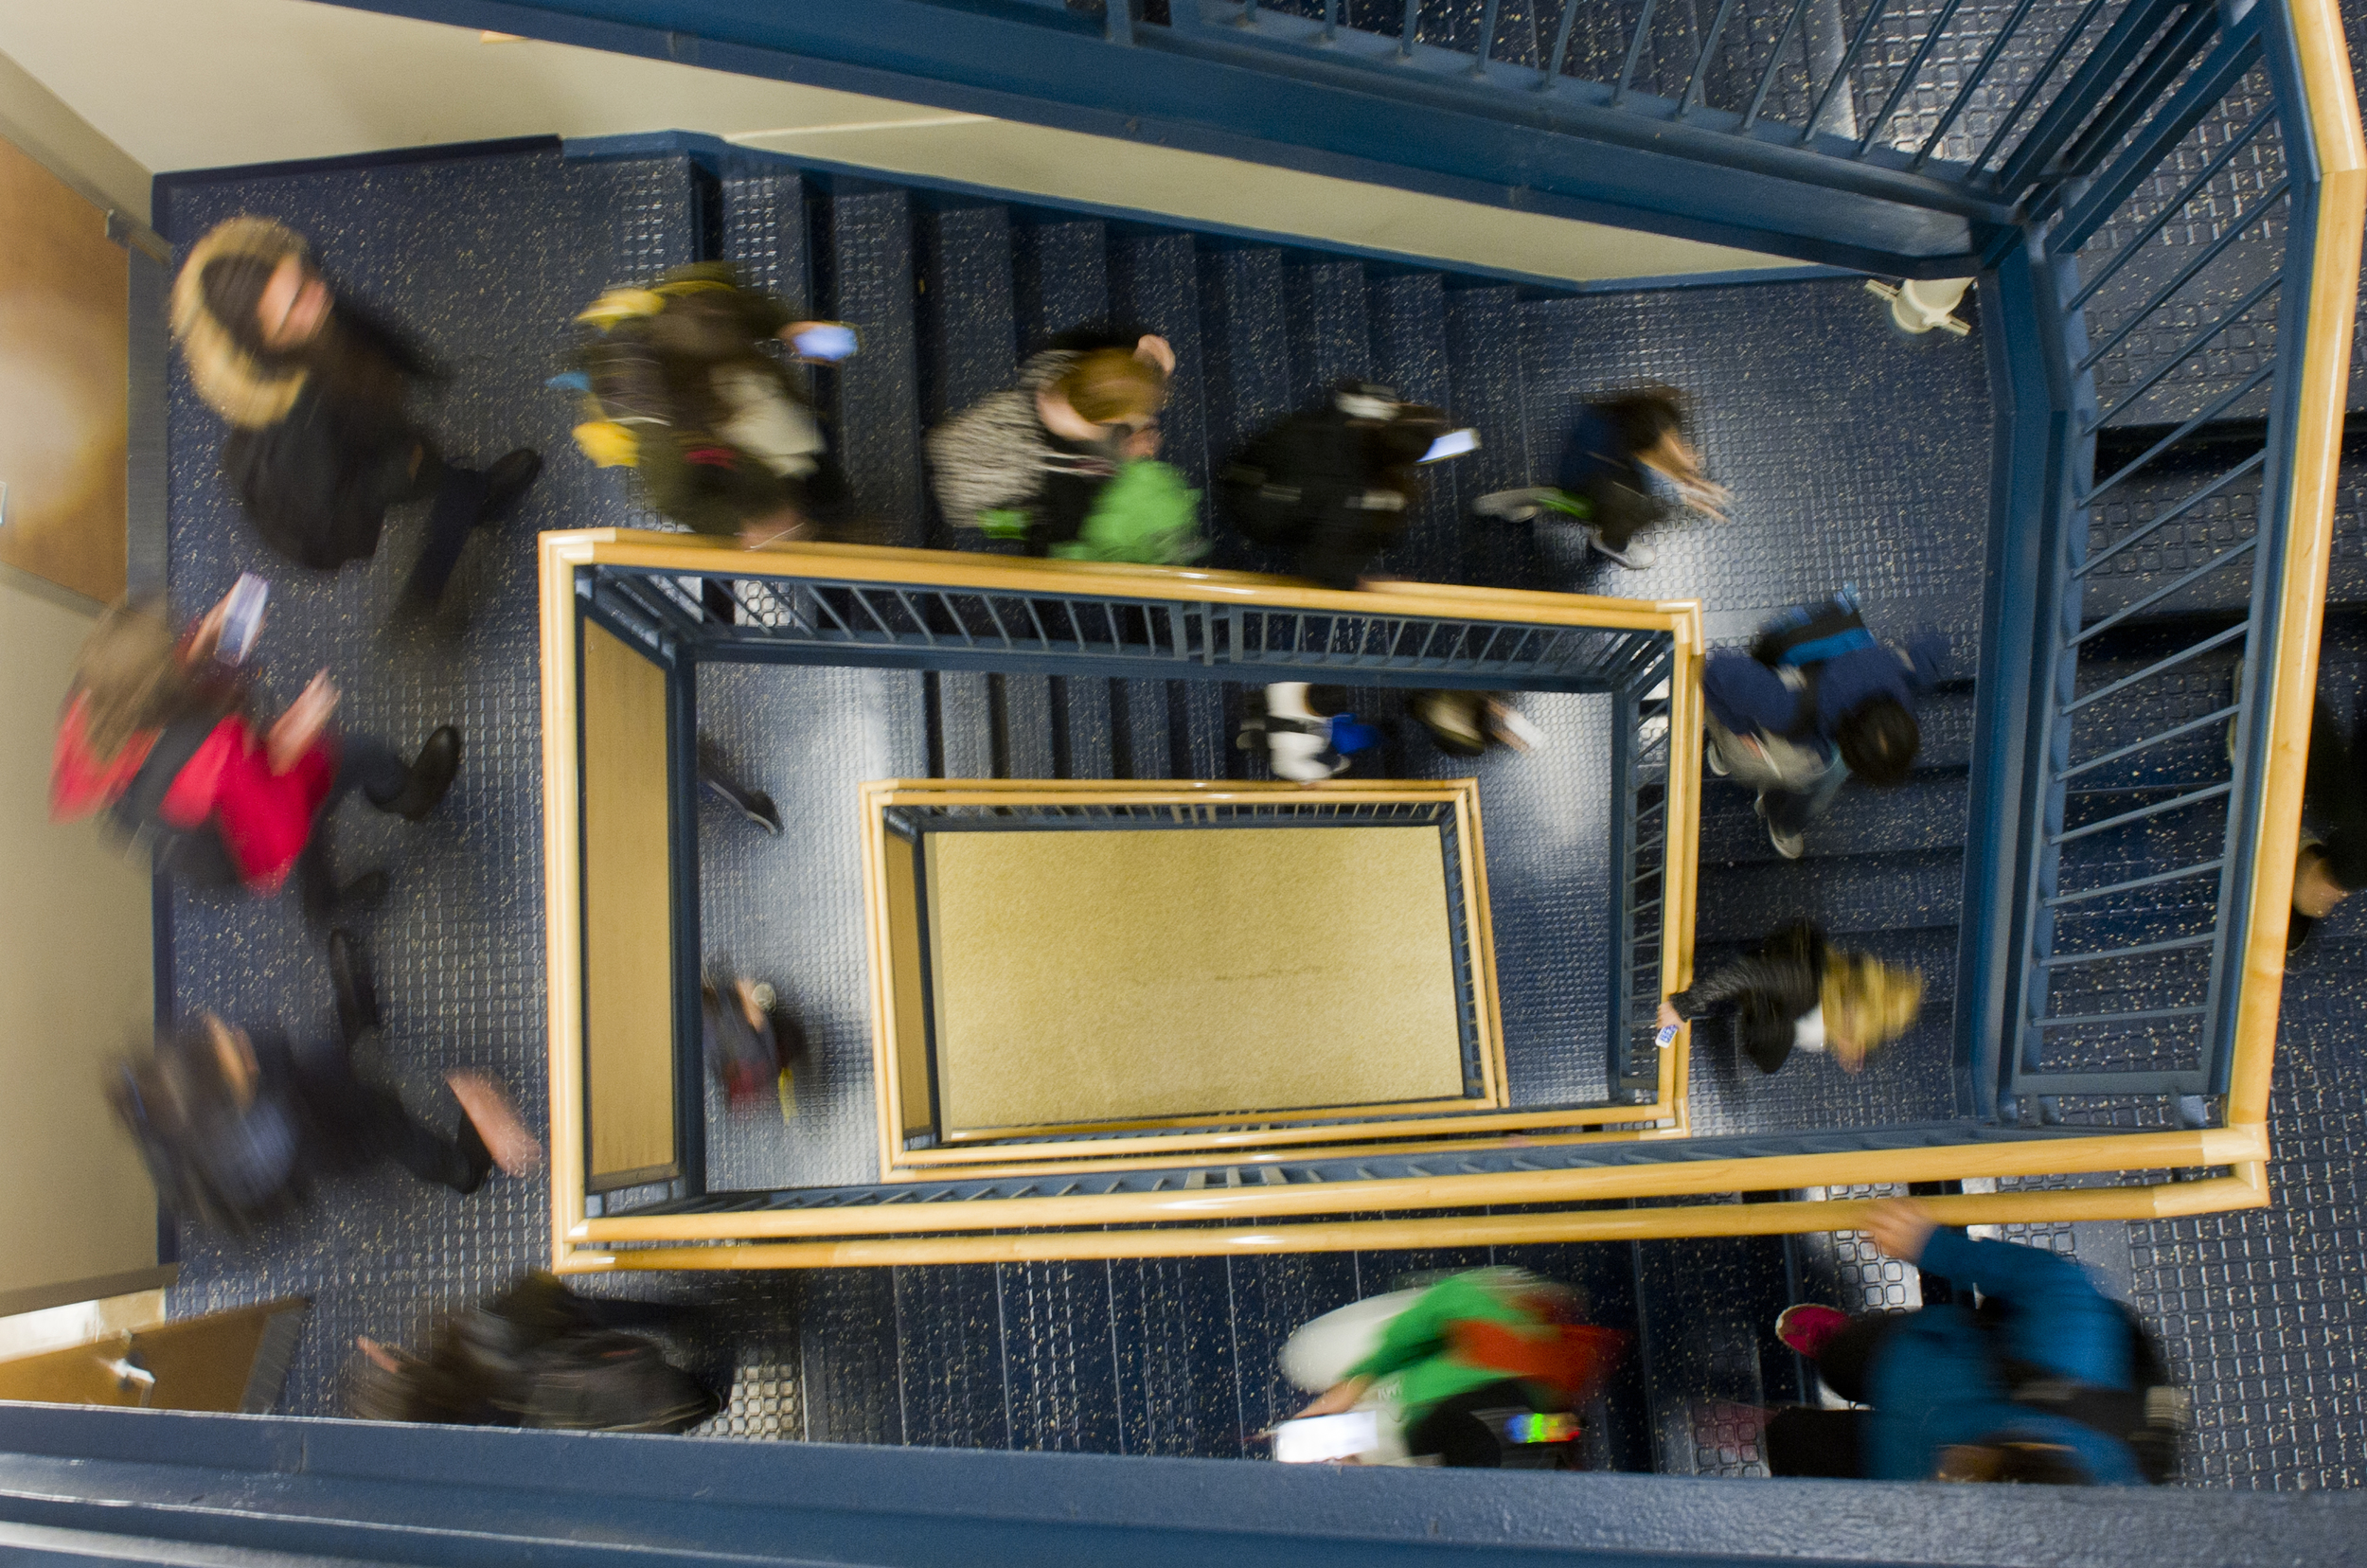 Students hit the stairs between classes at CGS November 6, 2014.Photo by Cydney Scott for Boston University Photography